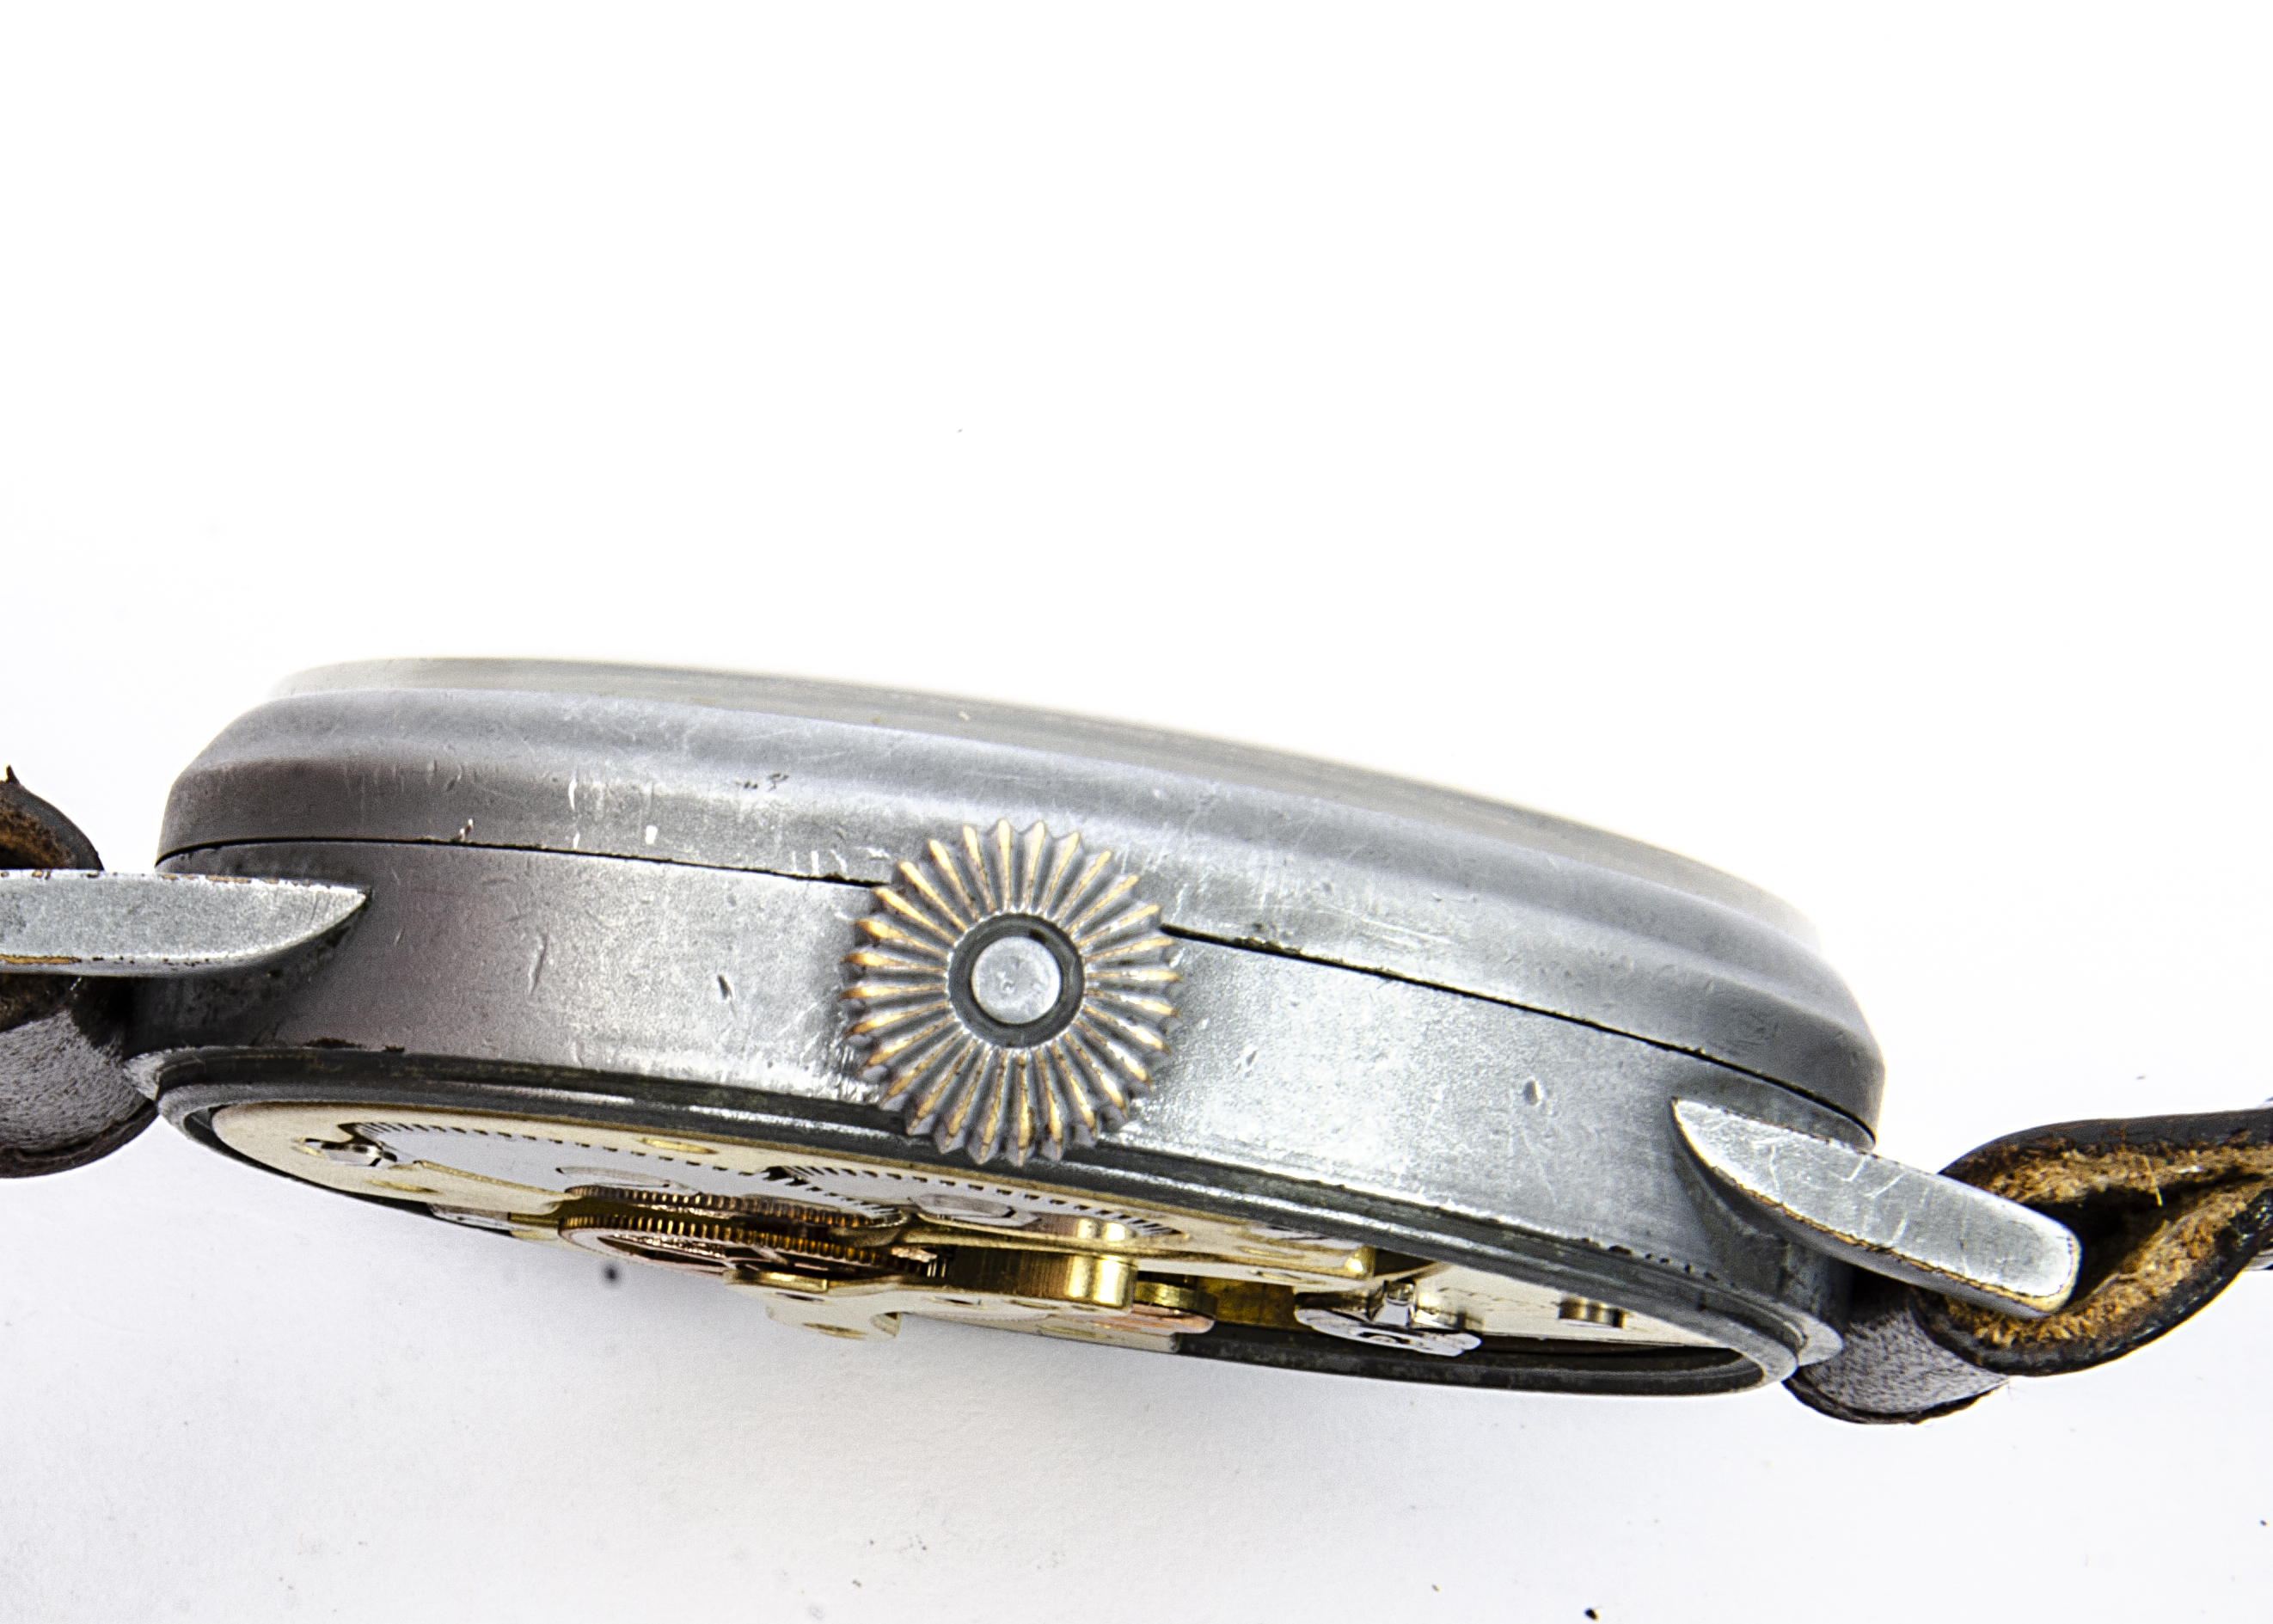 A WW2 period Laco (Larcher & Co) Durowe Military Luftwaffe Observer's oversized wristwatch, 55mm - Image 2 of 4